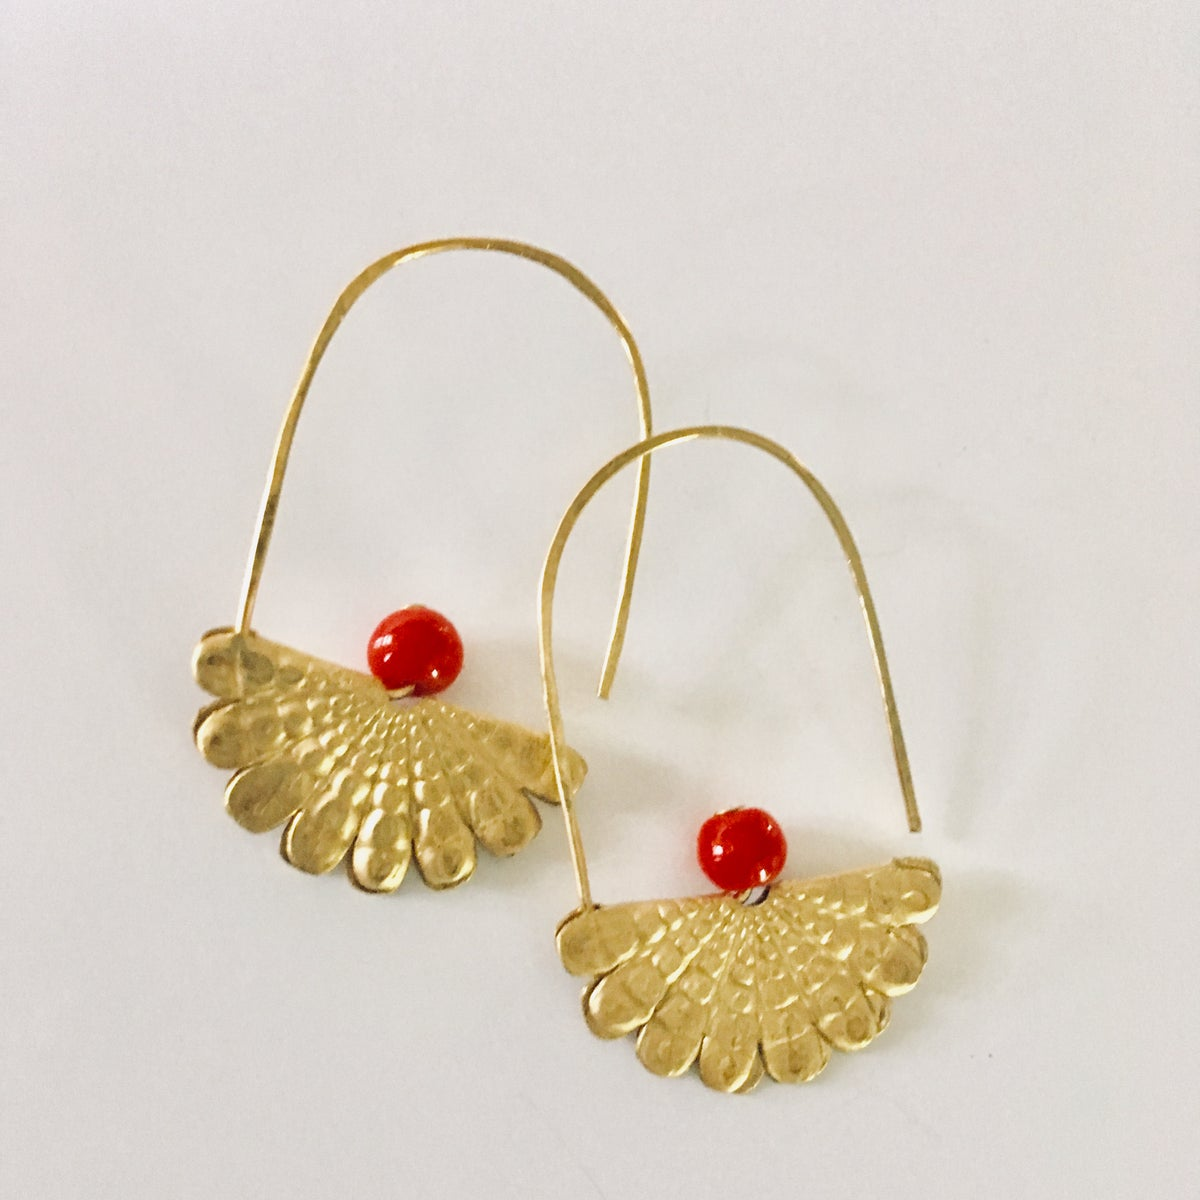 Image of Squash Blossom Earrings